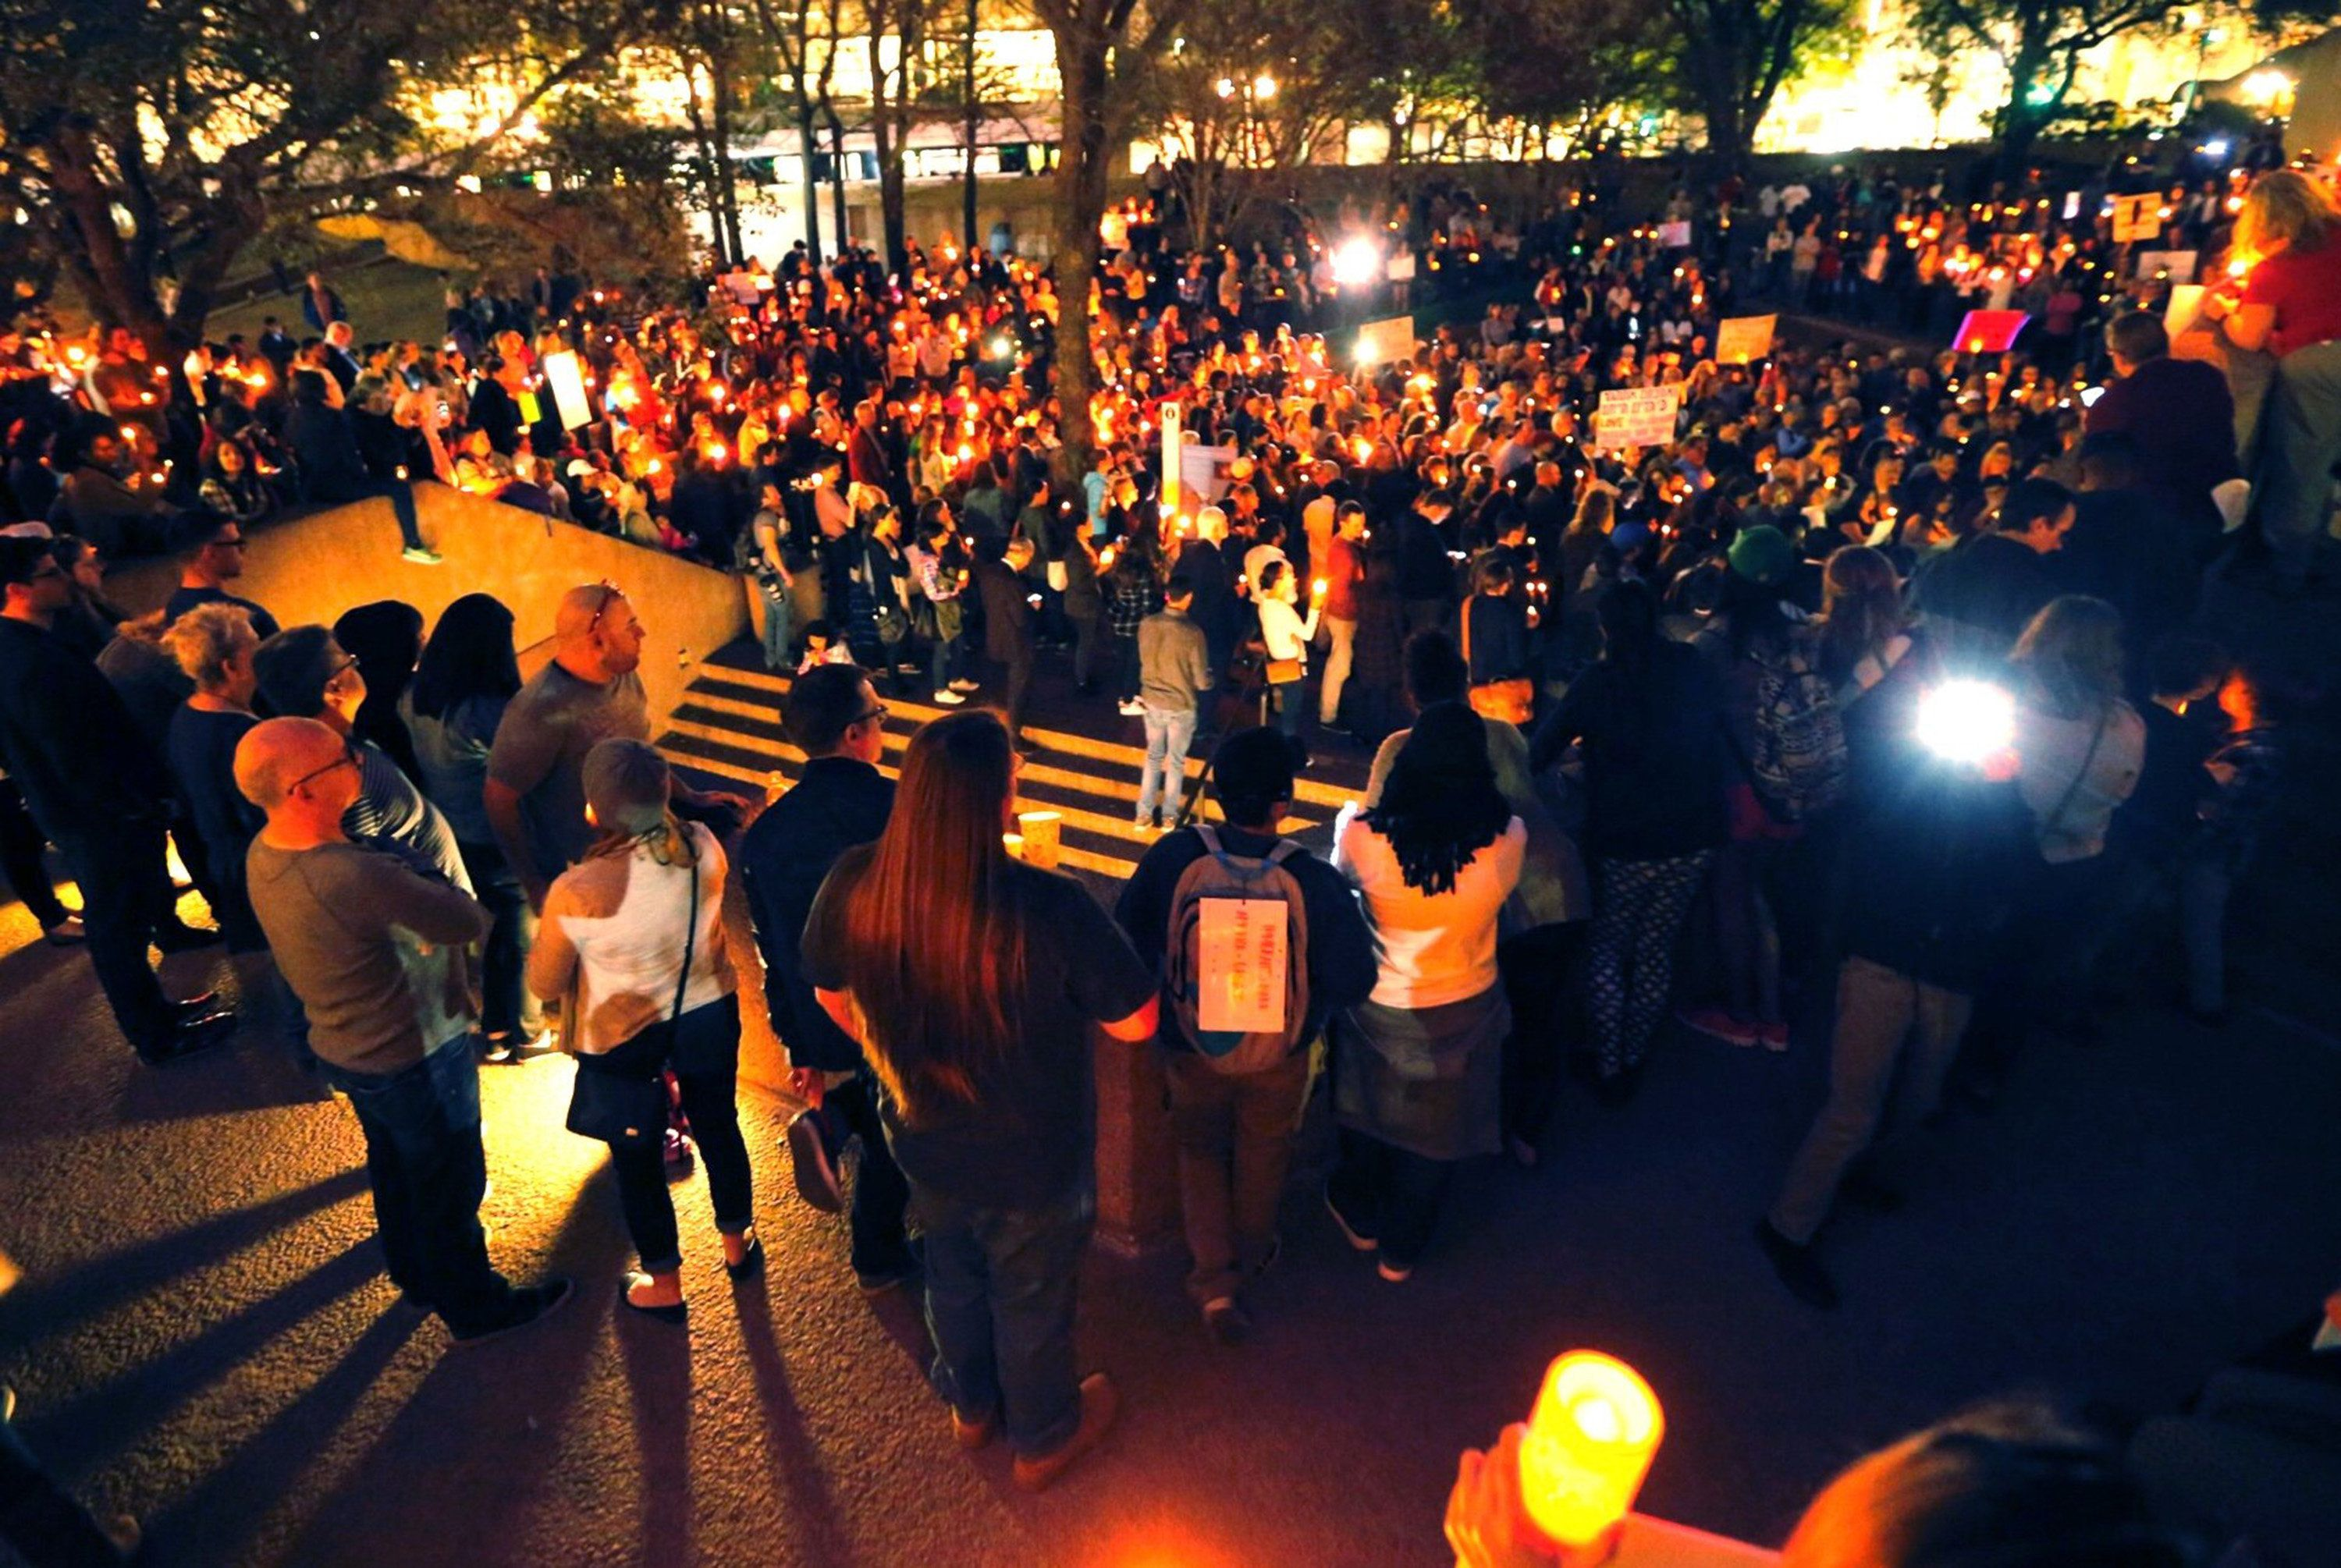 A vigil for refugees on Monday, Jan. 30, 2017 in Dallas, Texas.